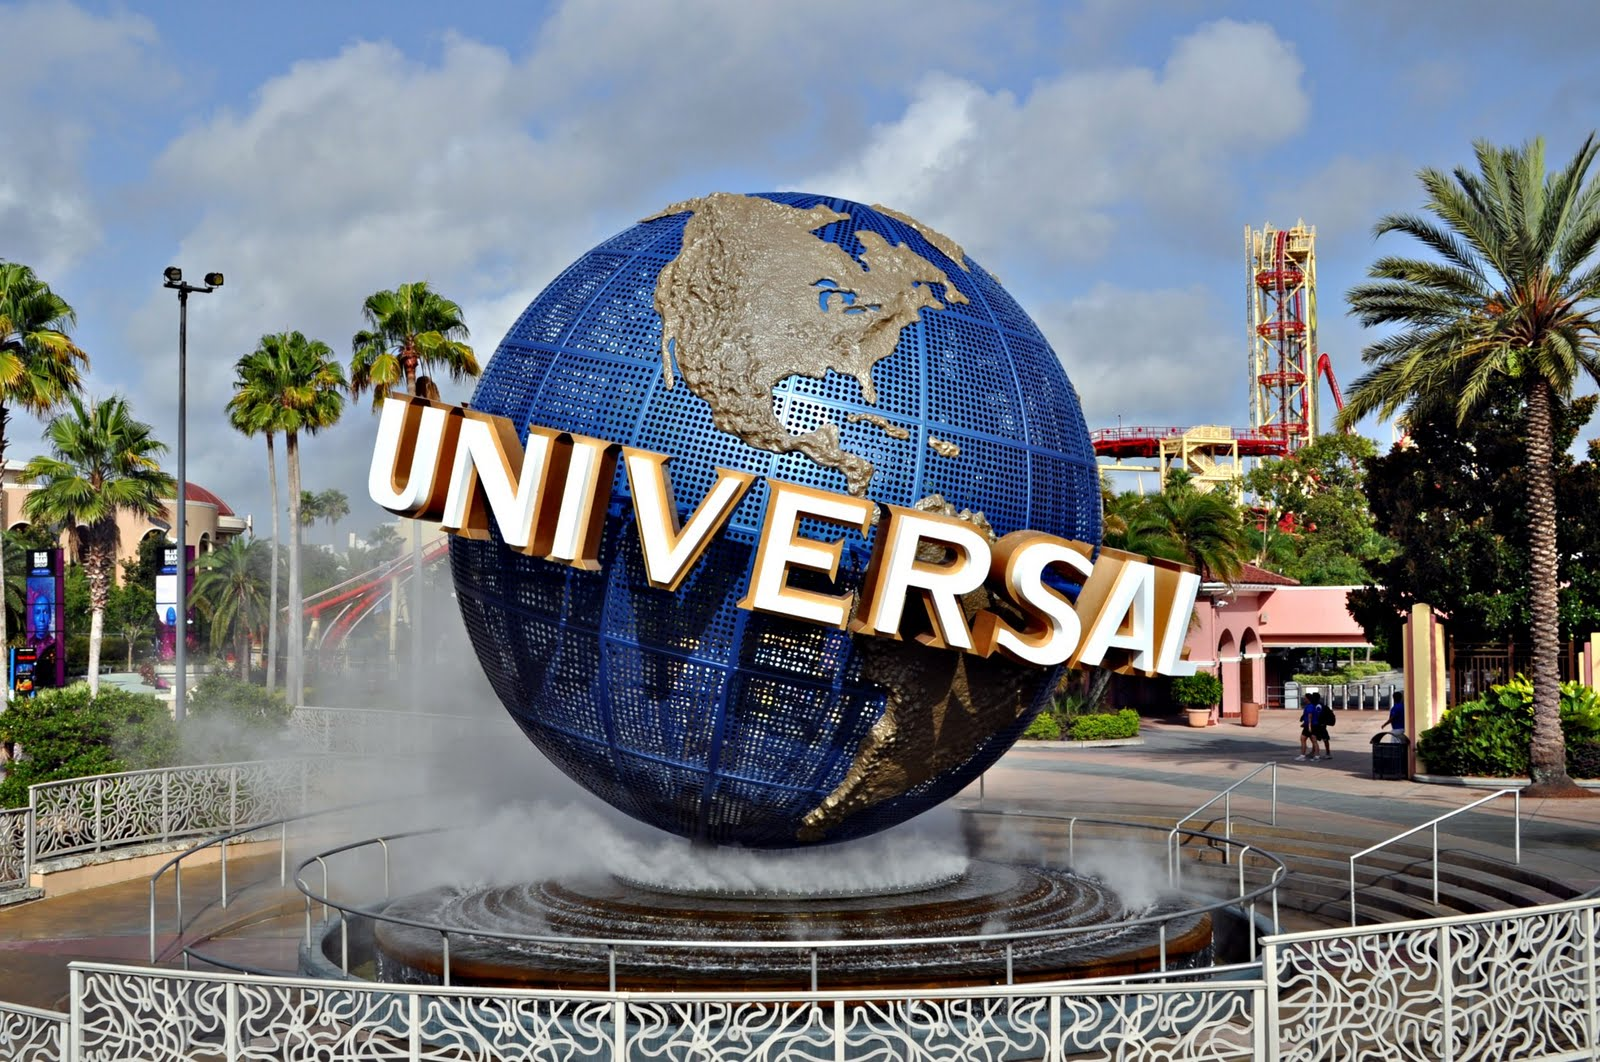 Visiting Universal Studios/Islands of Adventure Florida